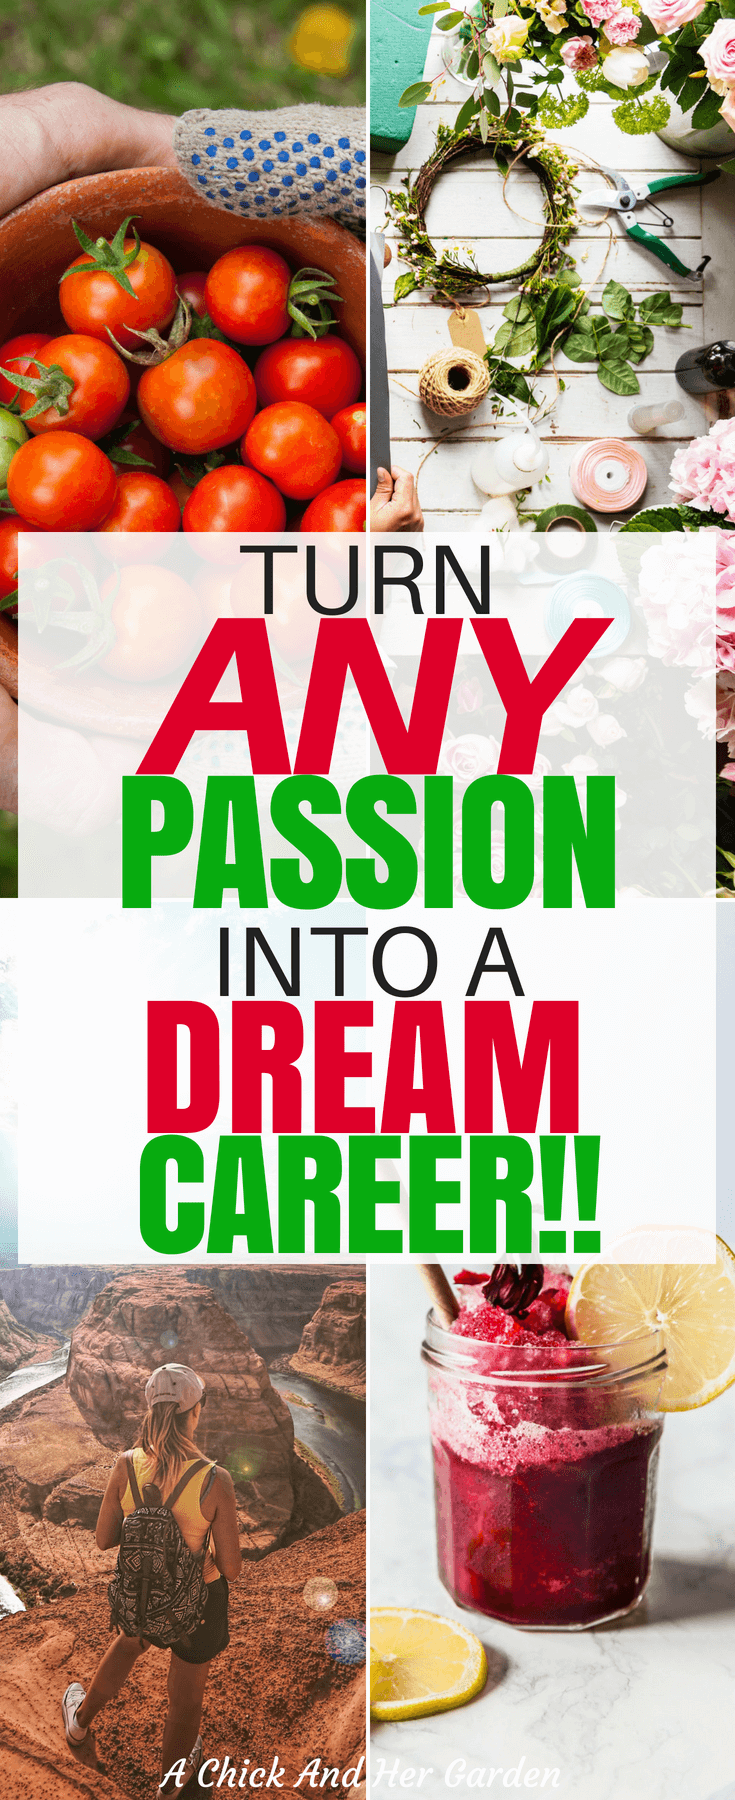 It is possible to turn you passion into a career! Any passion! Check out how she turned 10 chickens into a dream job! #lovewhatyoudo #makemoneyfromhome #makemoneyblogging #makemoneyonline #achickandhergarden